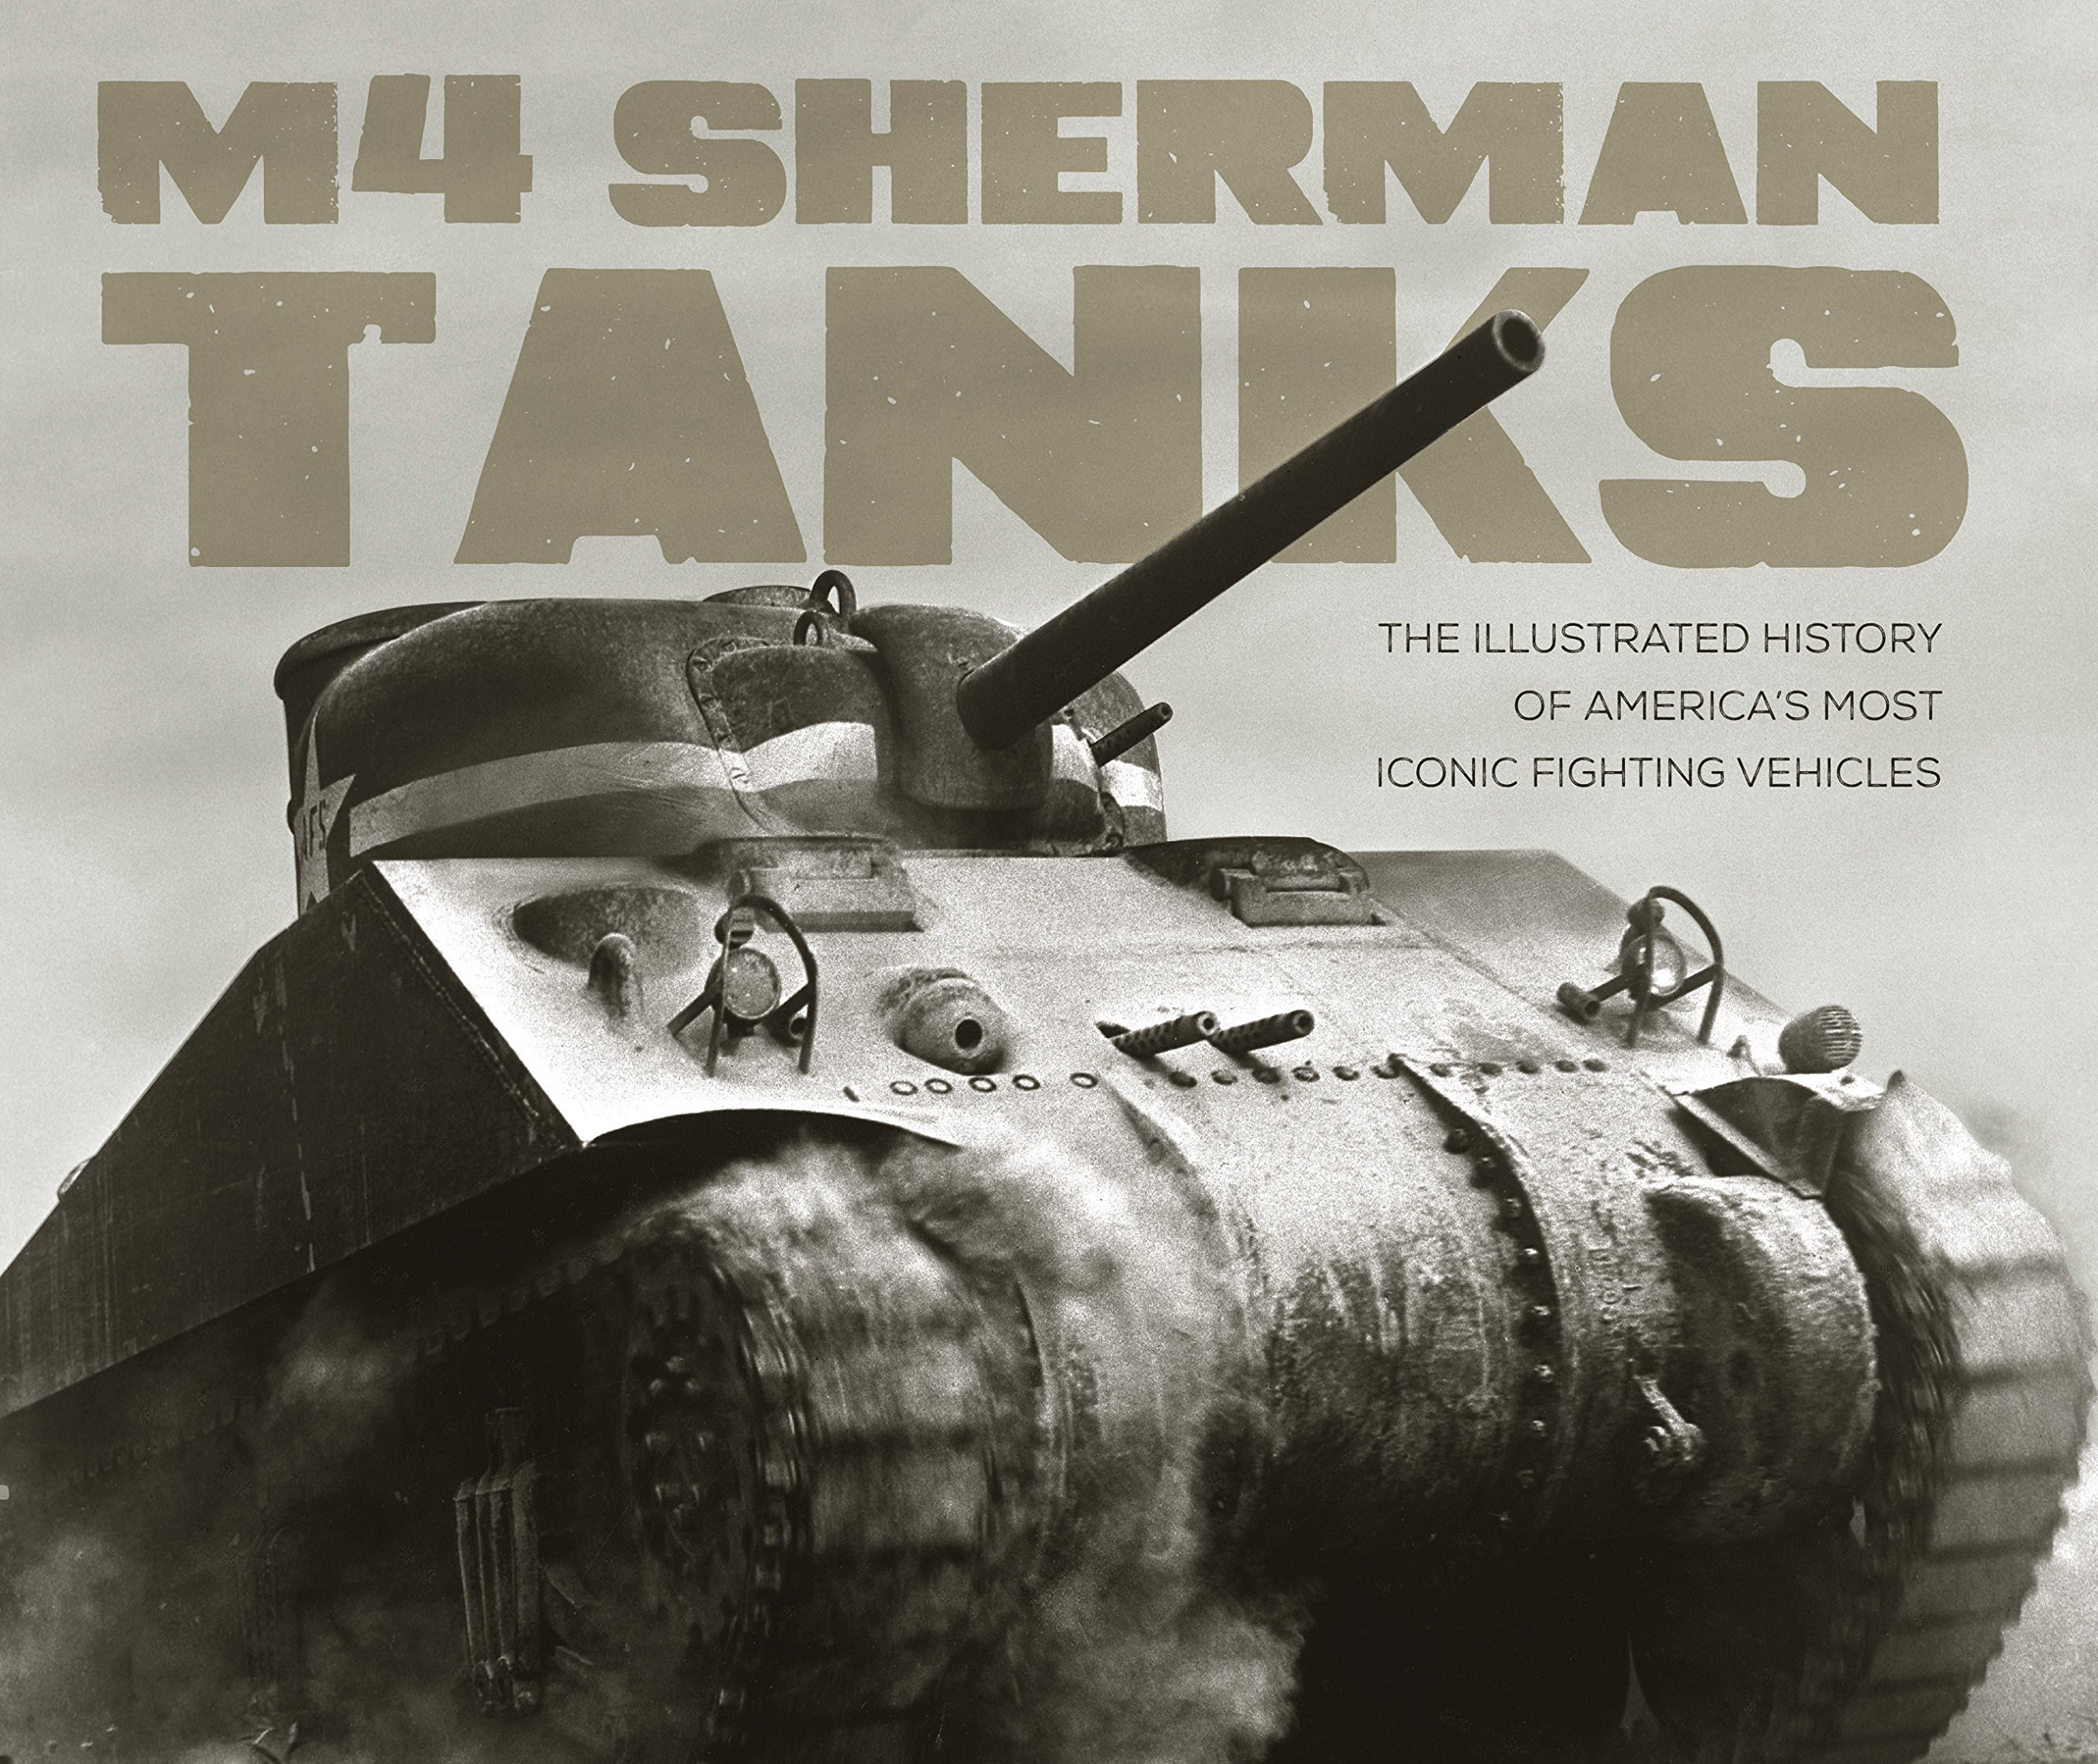 M4 Sherman Tanks: The Illustrated History of America's Most Iconic